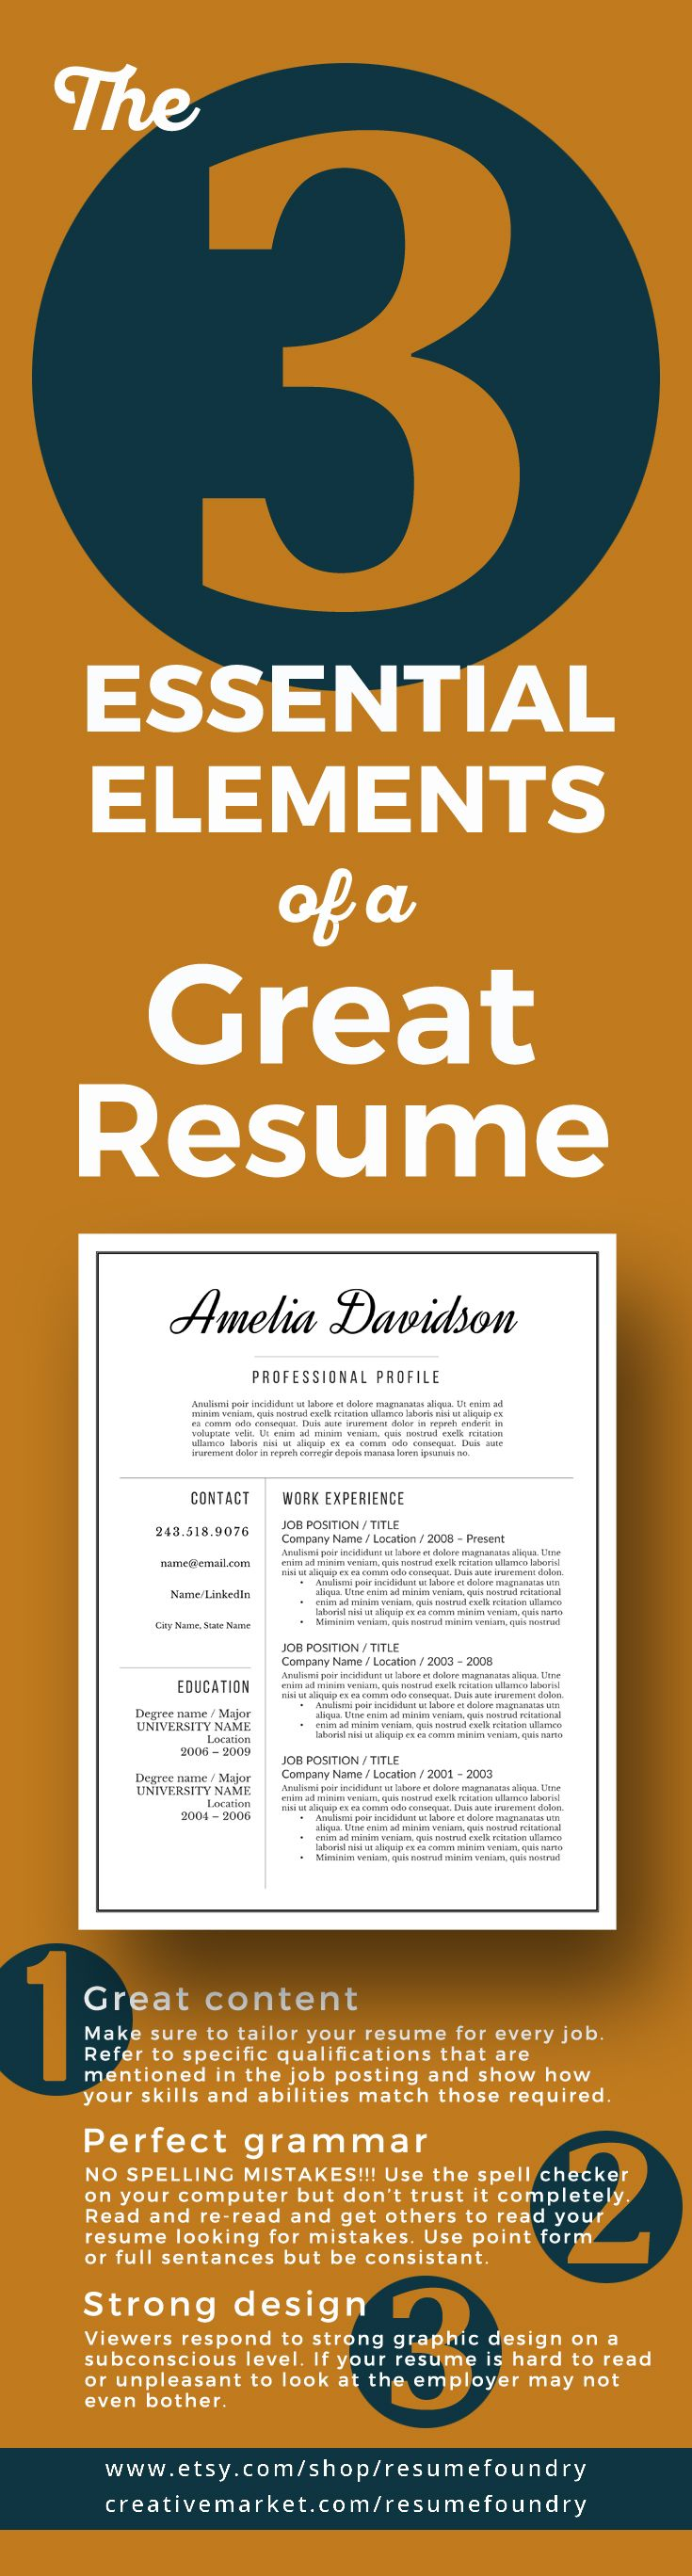 career change resume sample%0A Make sure to include these three essential elements to perfect your resume   Resume Foundry